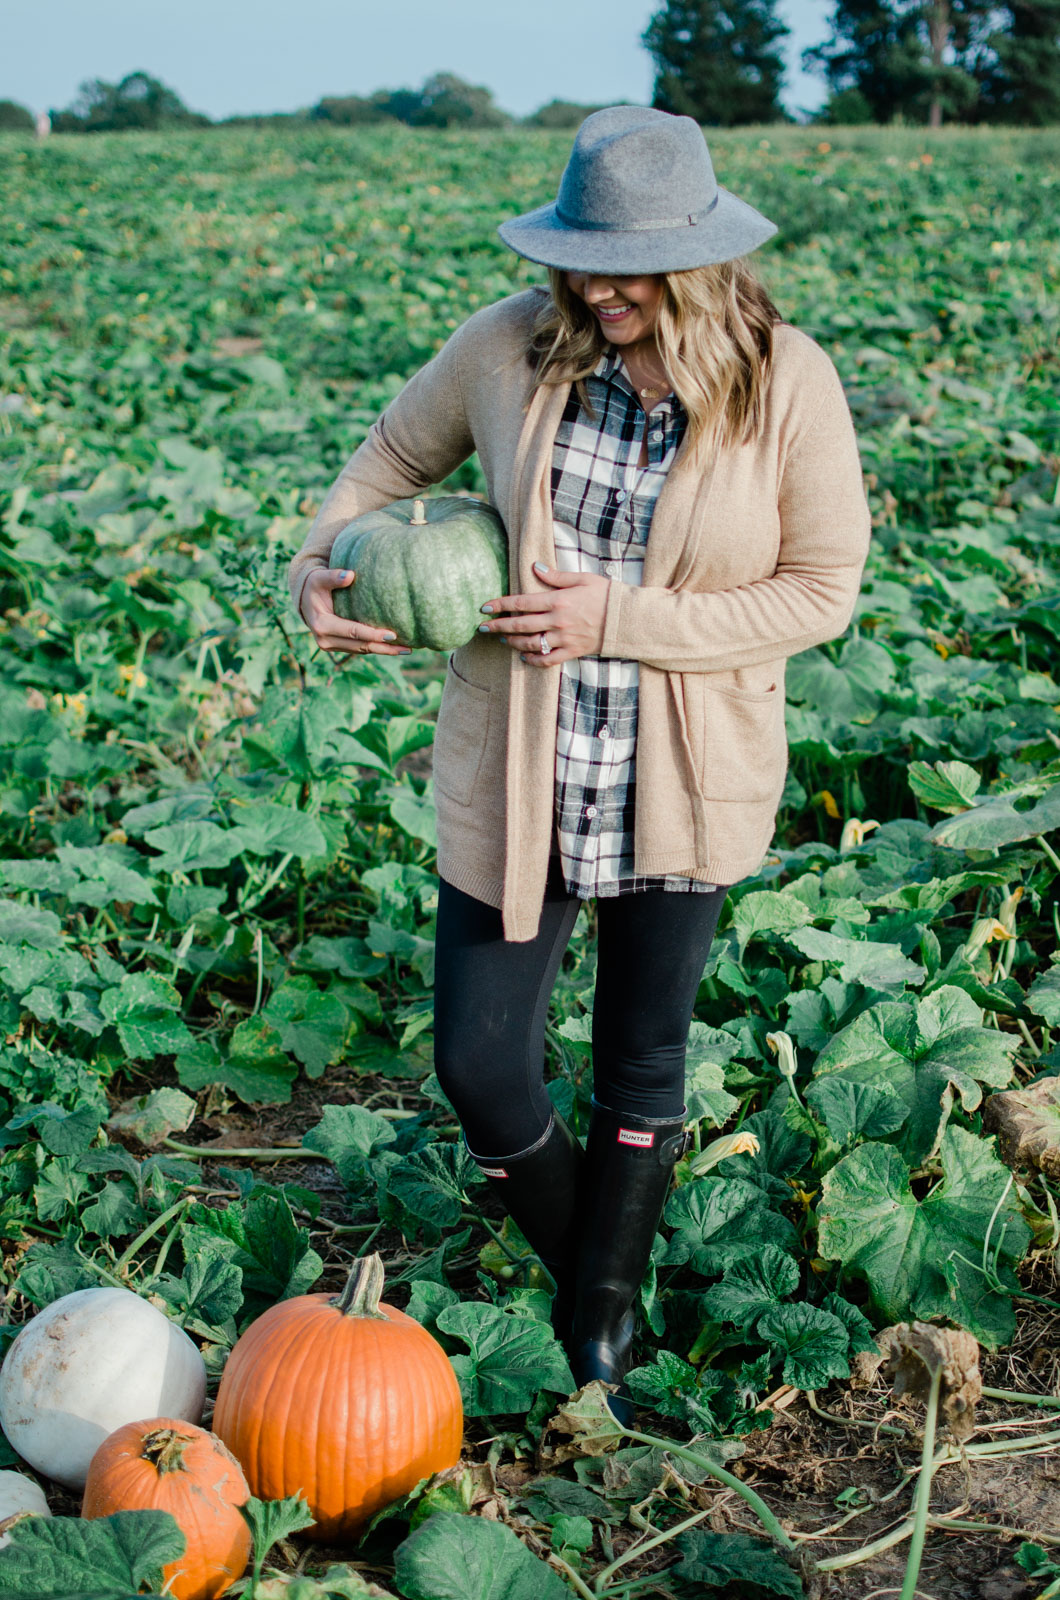 fall pumpkin patch outfit - fall family outfit ideas | bylaurenm.com